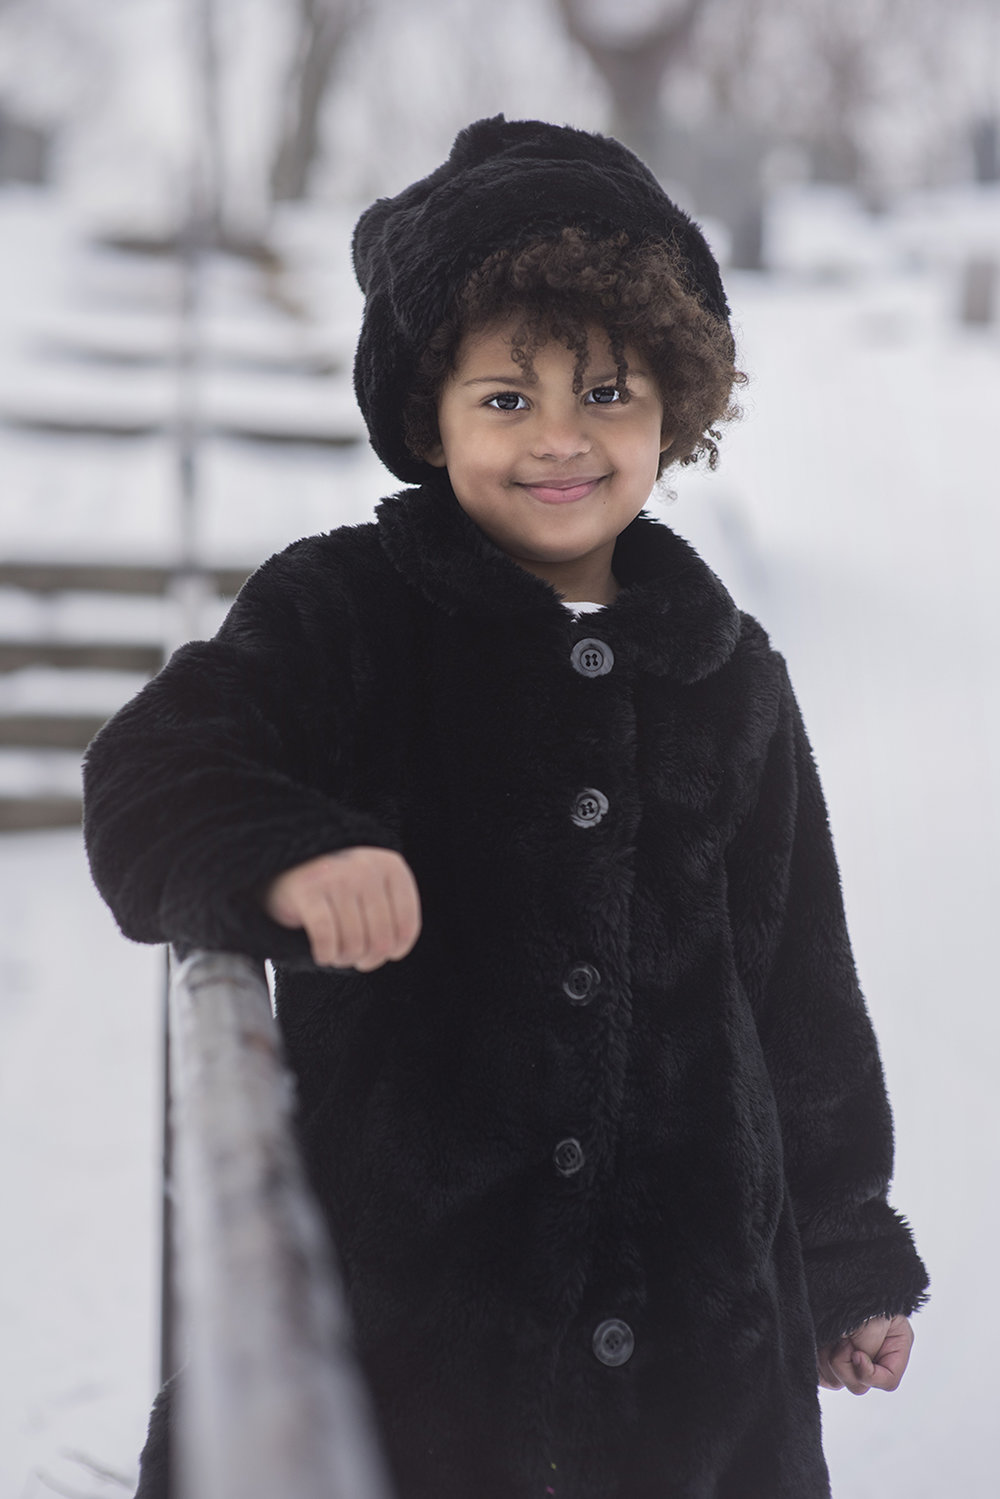 Winter Children's Street Photography!  Let it snow!